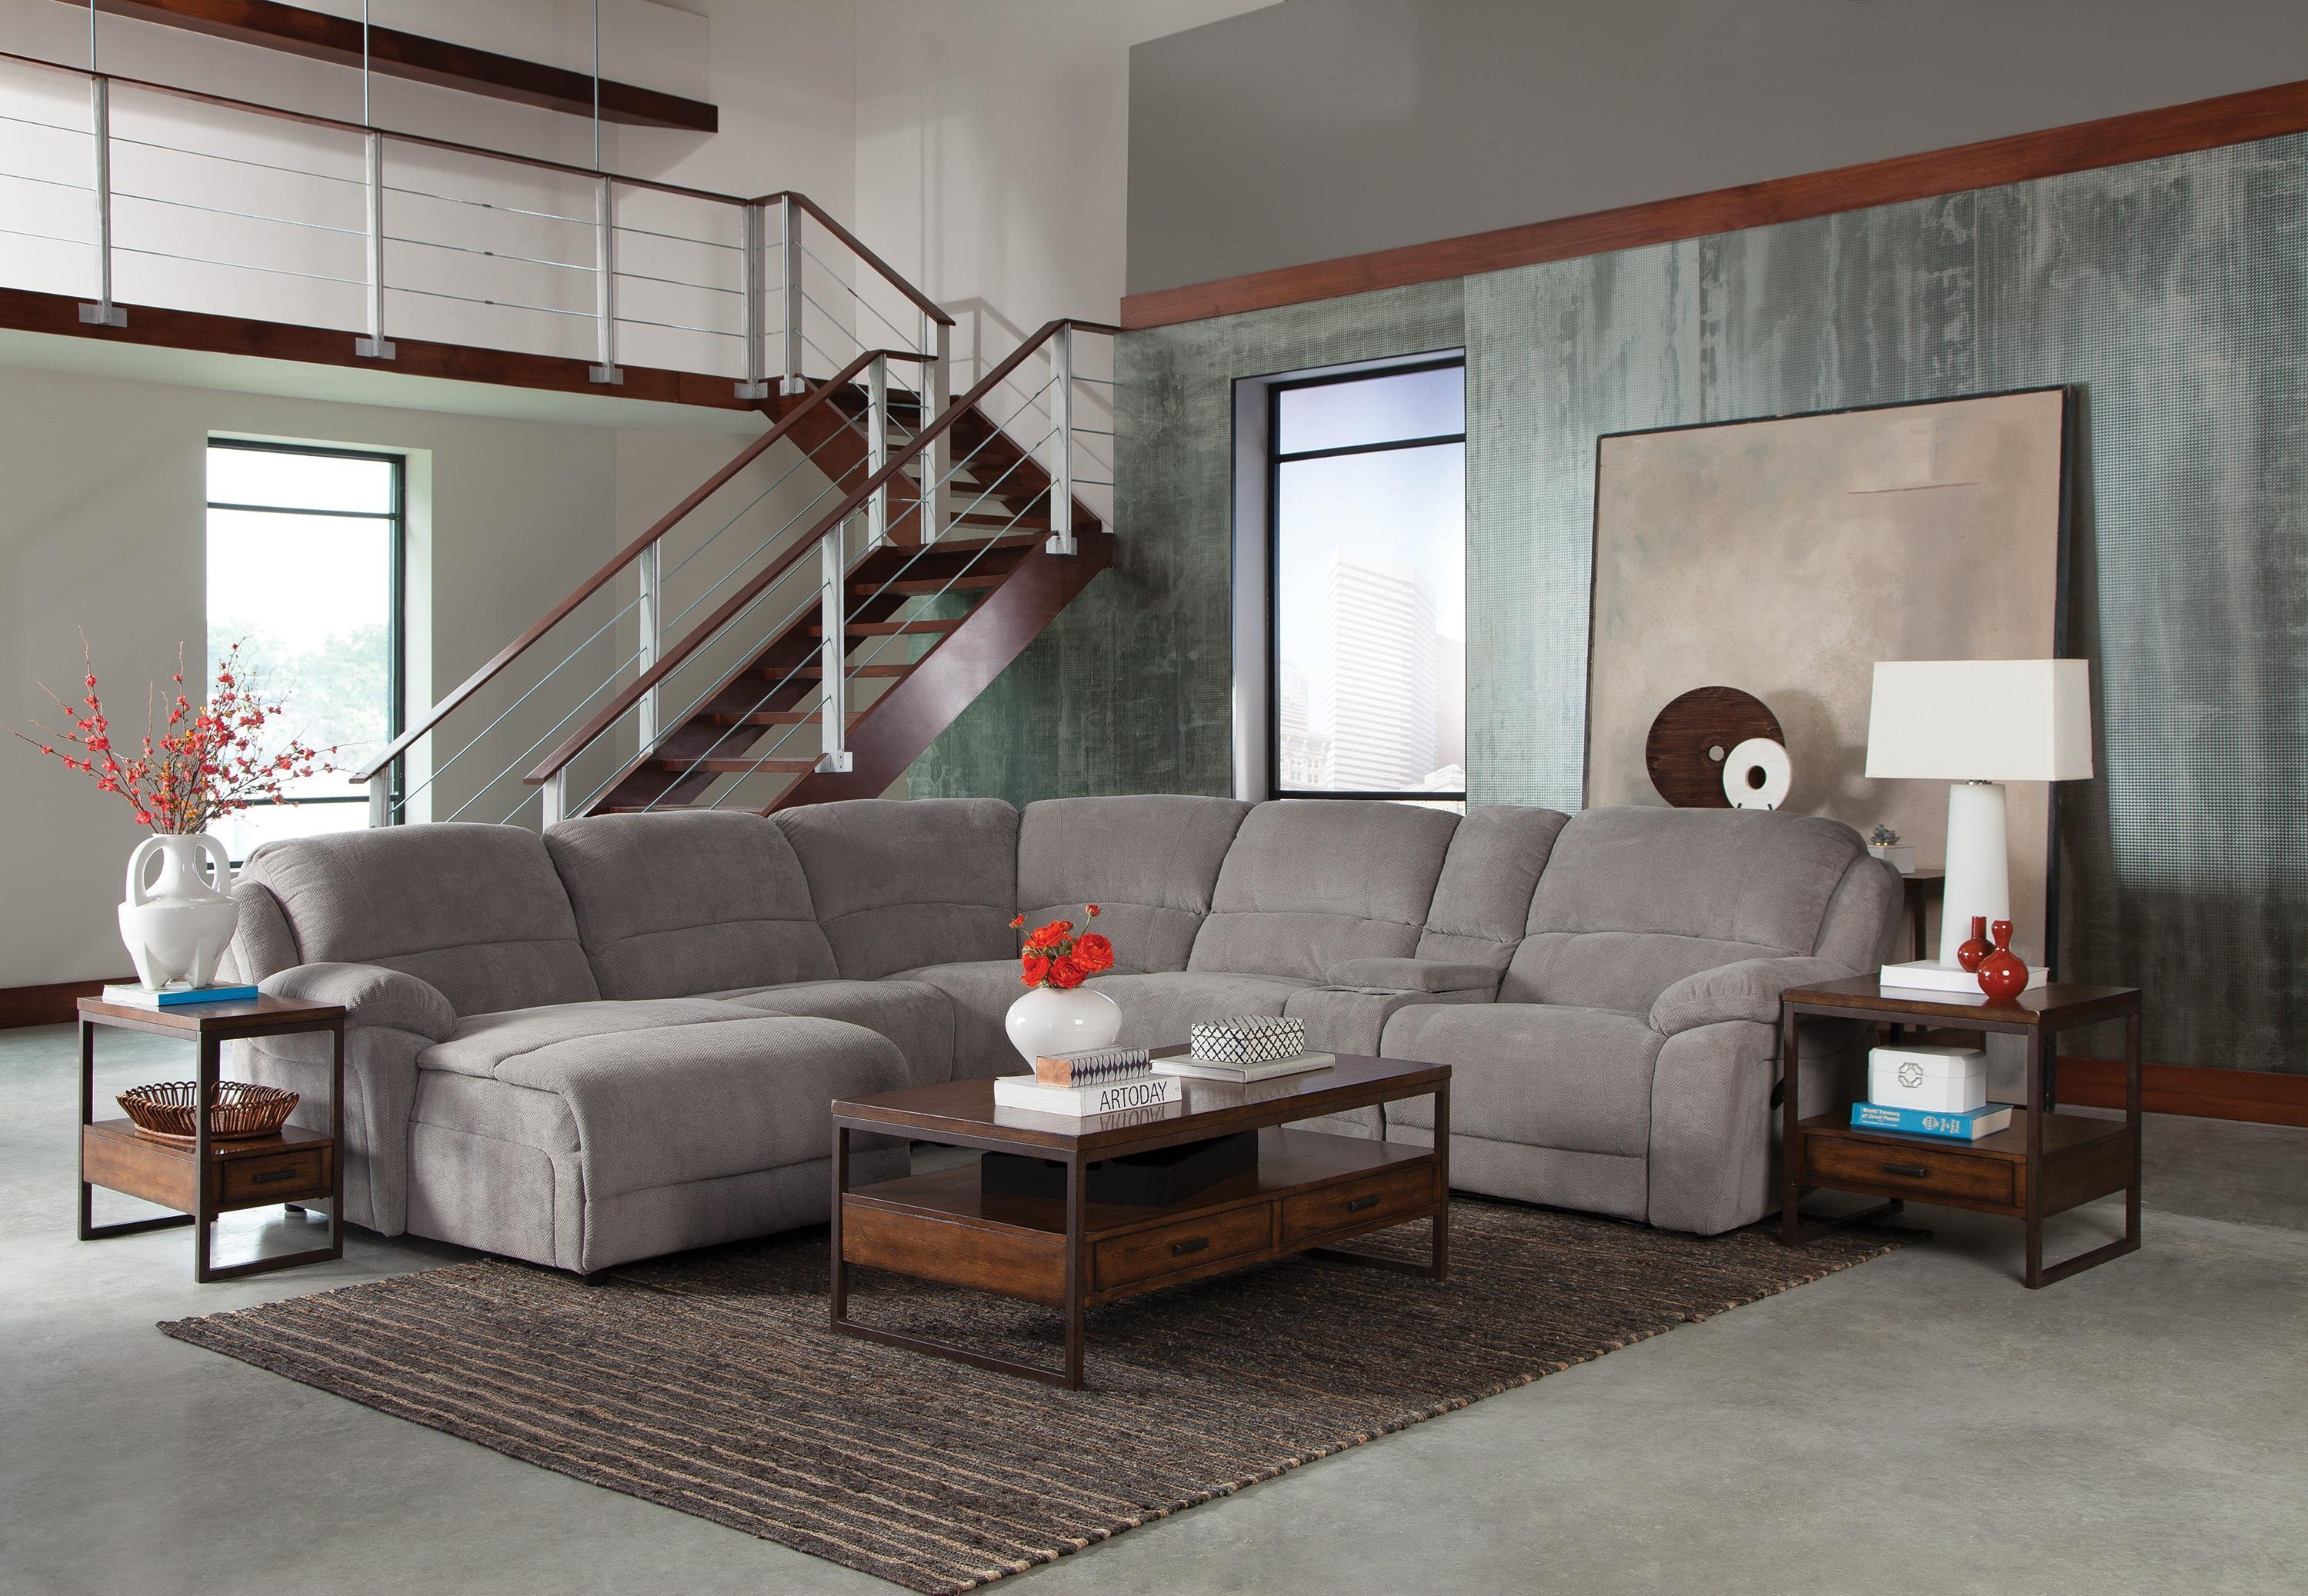 Living Room: Coaster Sofas | Ottoman For Sectional | Coaster Sectional Throughout Coasters Sofas (Image 18 of 20)